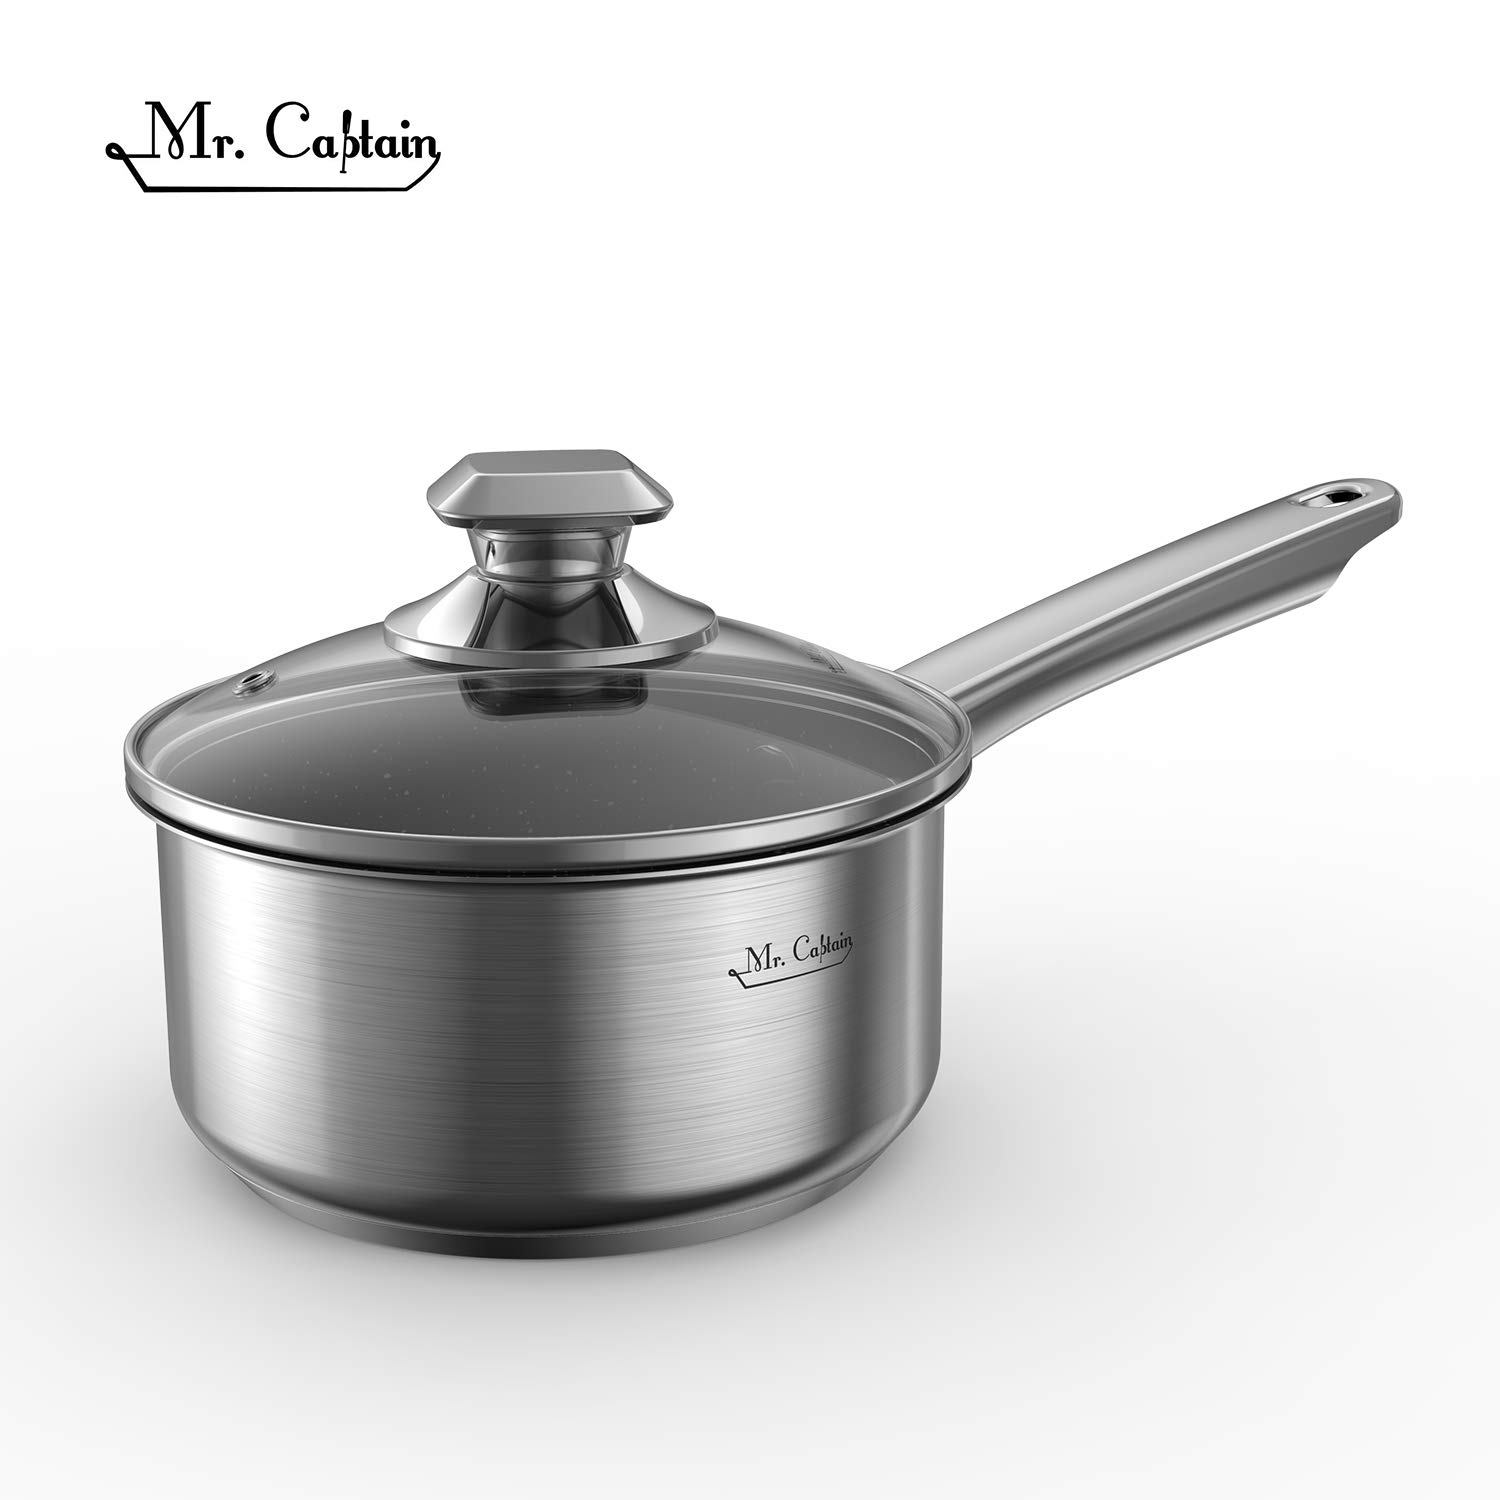 Mr Captain 1 Quart 18/10 Stainless Steel Nonstick Saucepan With Lid,Stone-Derived Non-Stick Granite Coating Small Pot Induction Compatible Dishwasher Safe,Oven Safe